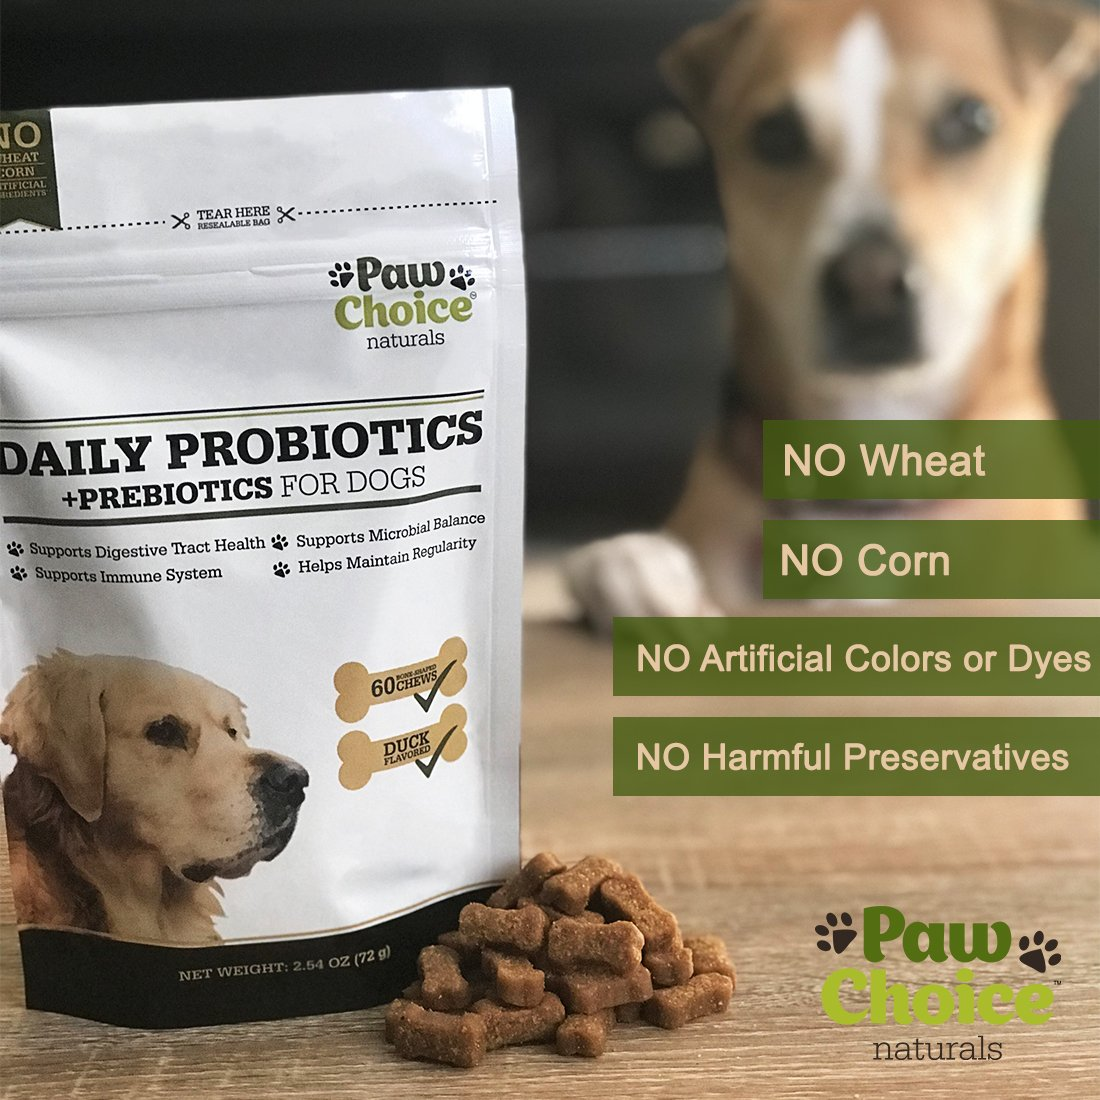 Probiotics for Dogs with Prebiotics - Daily Chews for Digestion, Regularity, Diarrhea Relief, Plus Supports Immune System and Health - Natural Supplement and Treat Made in USA by Paw Choice (Image #2)